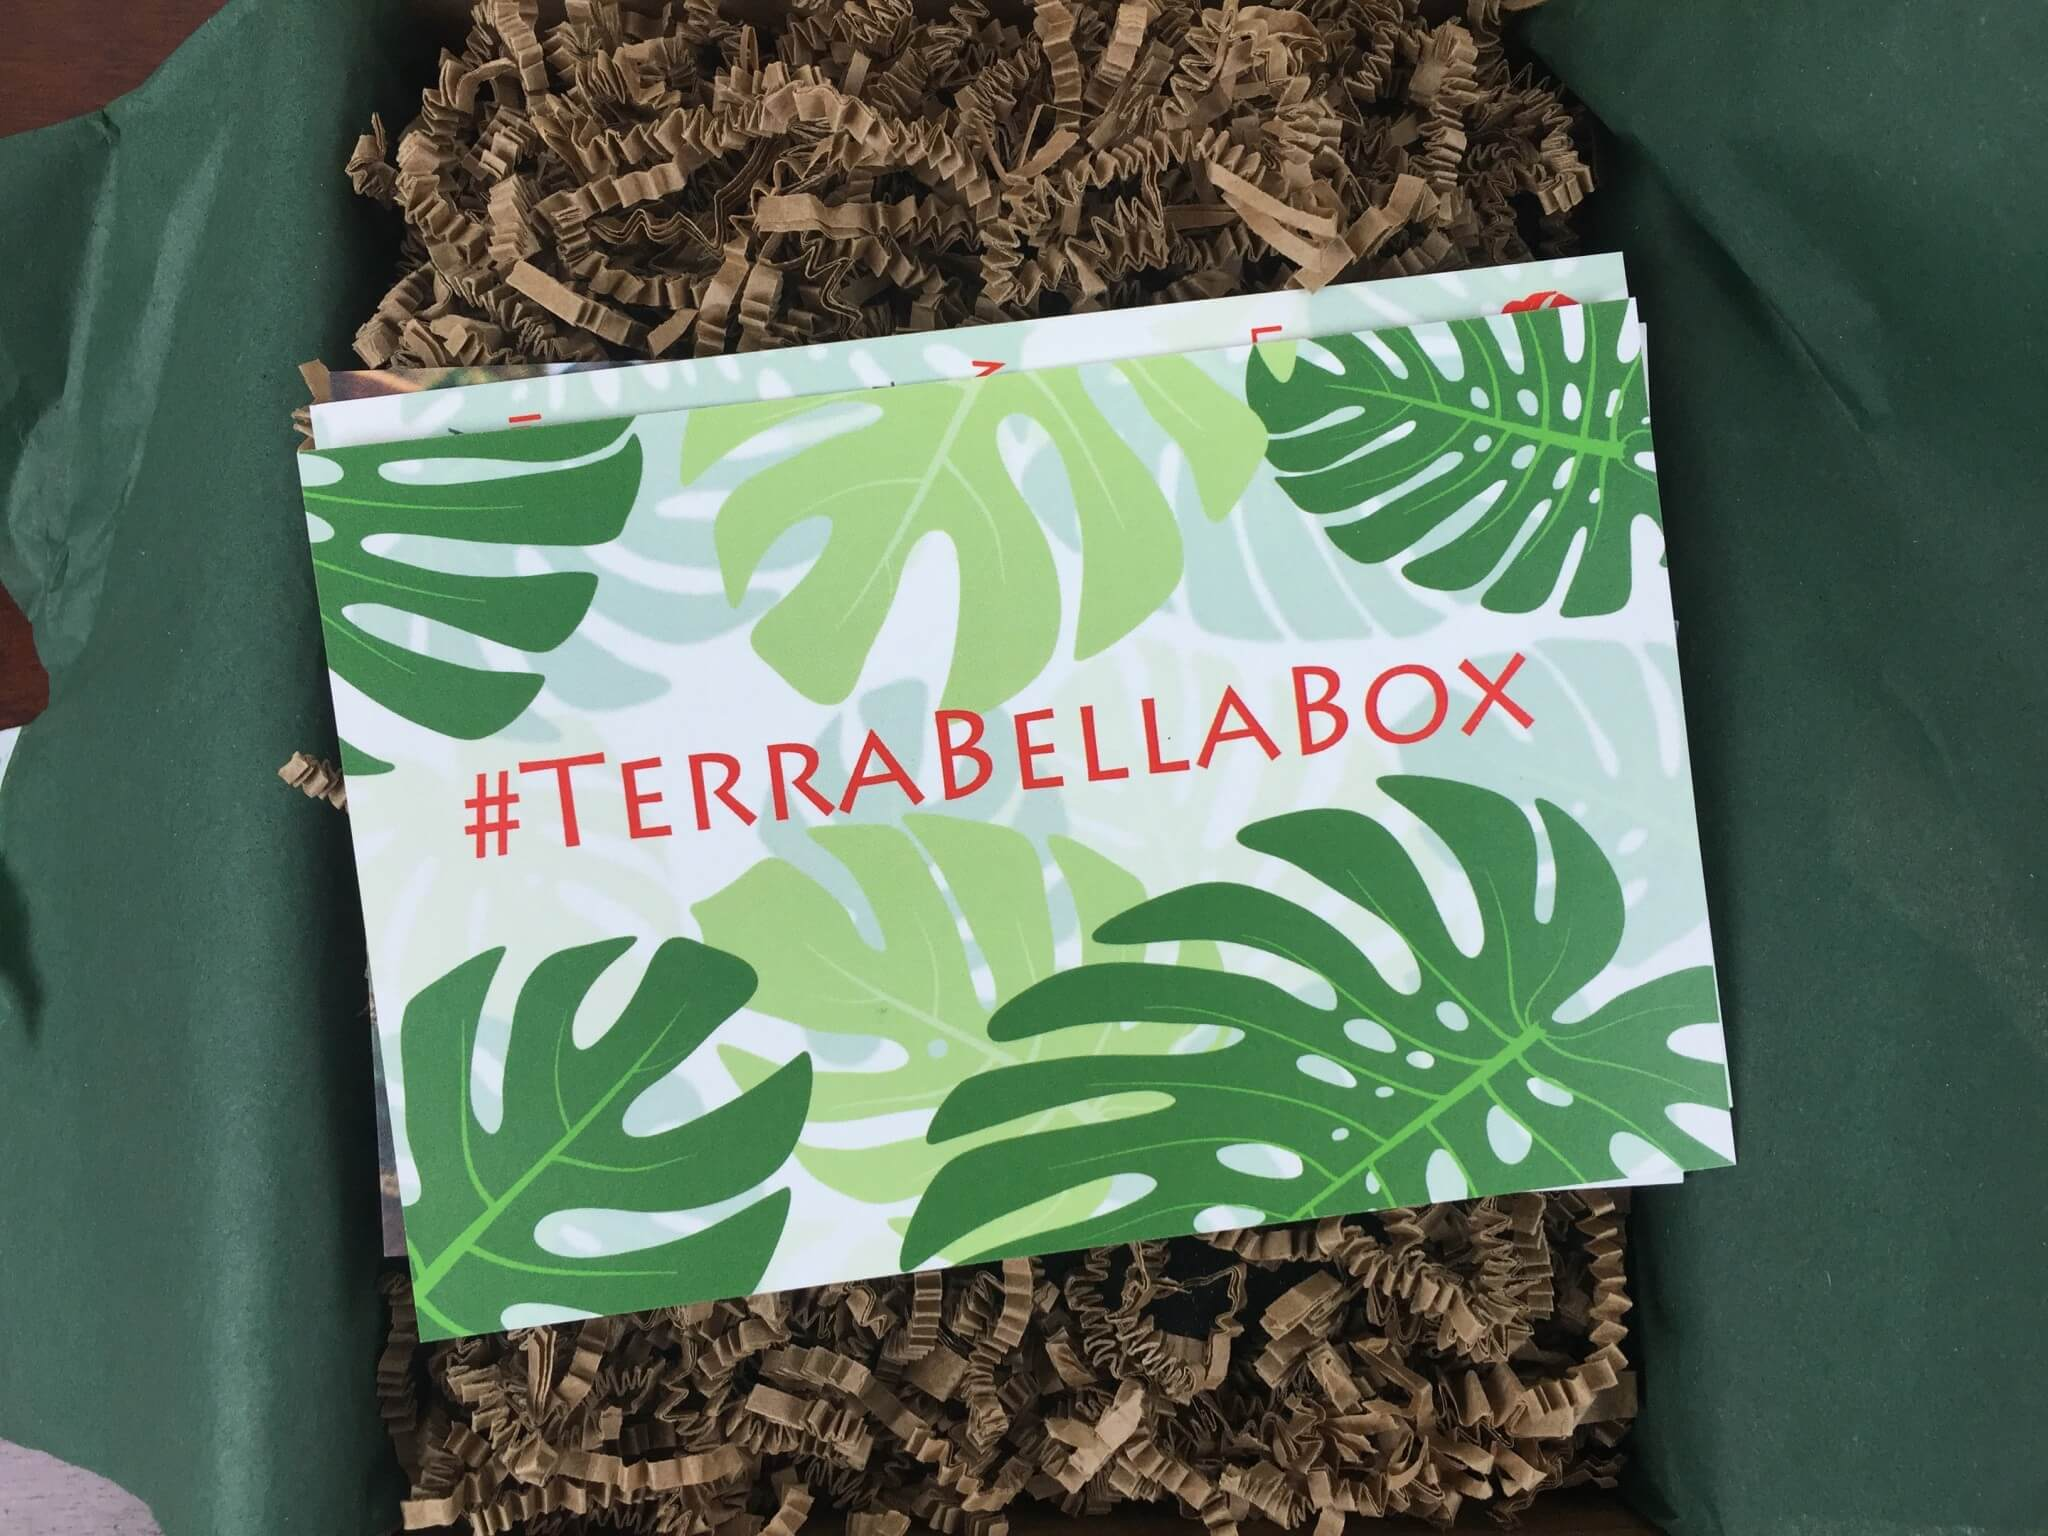 Terra Bella Box December 2015 Subscription Box Review & Coupons